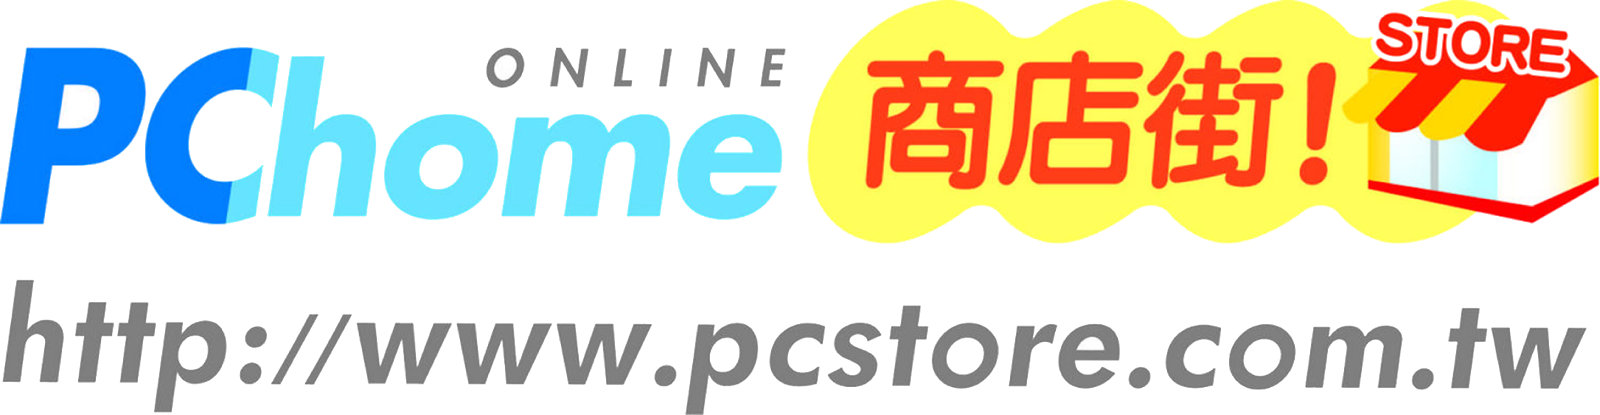 WOOHOO-pchome online store